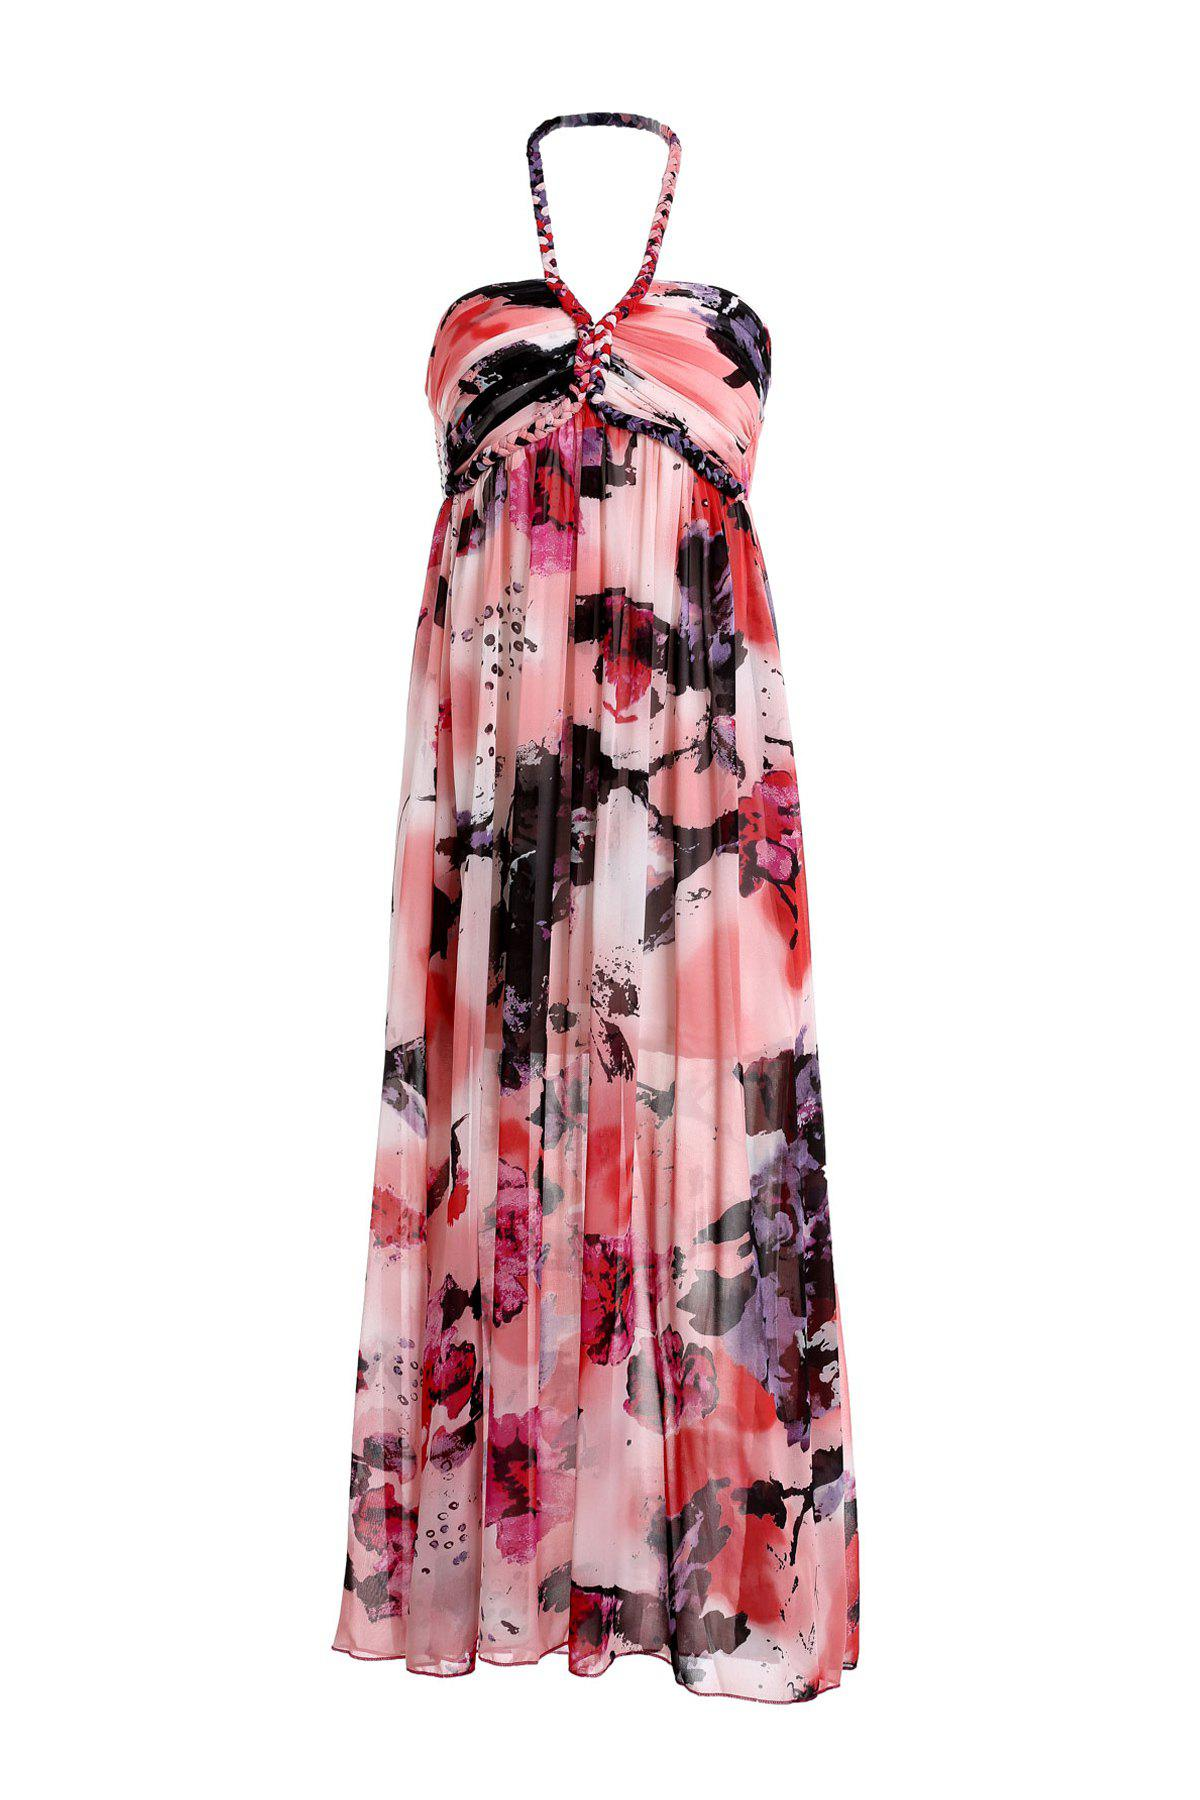 Fashionable Sleeveless Halter Pleated Printed Women's Dress - COLORMIX ONE SIZE(FIT SIZE XS TO M)